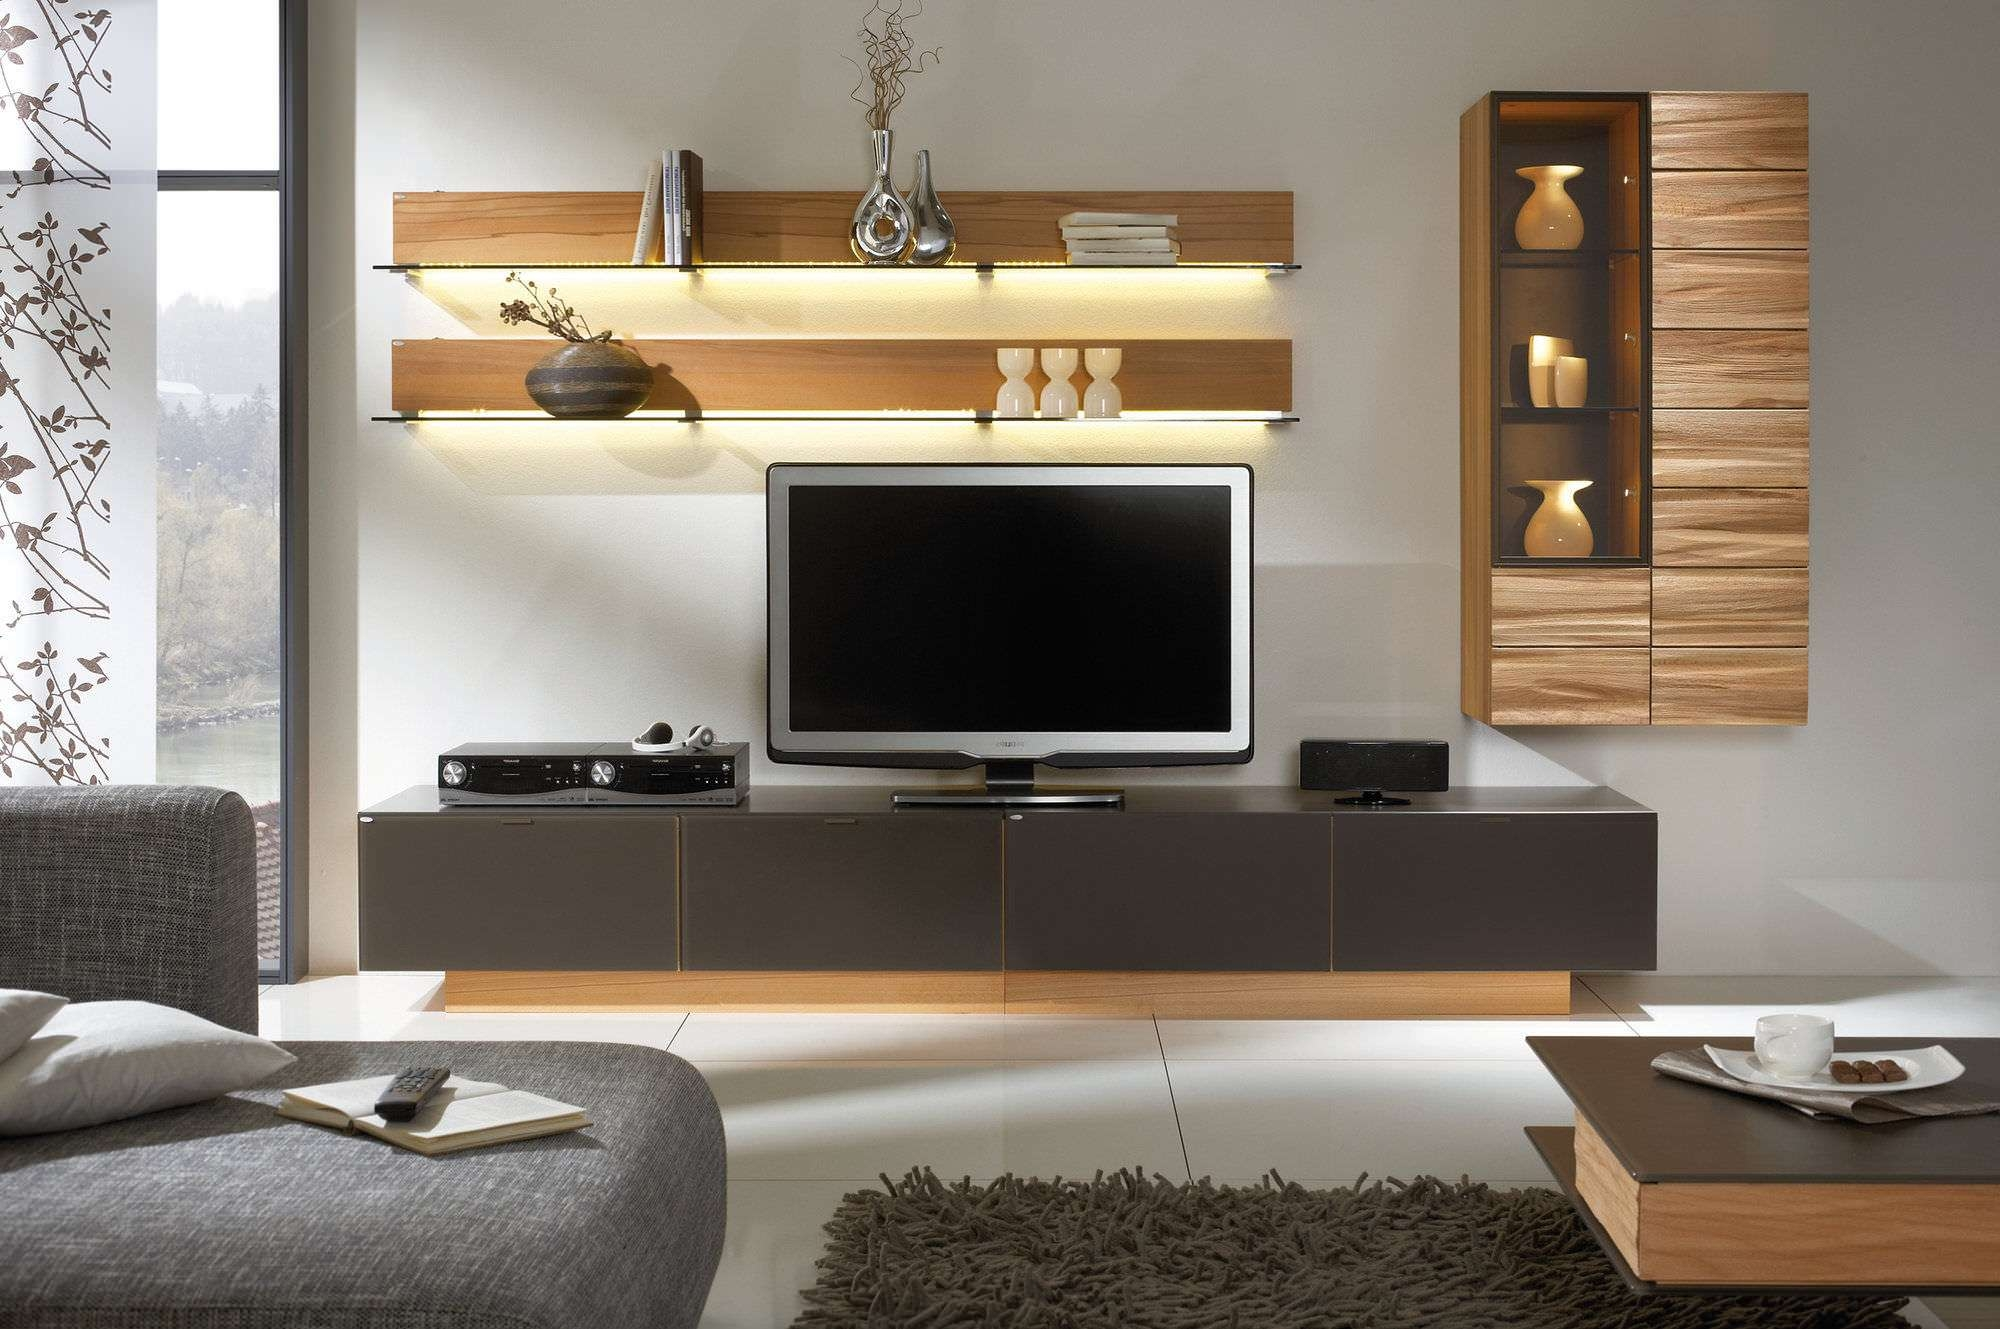 Decoration : Best Tv Wall Mount With Shelf Corner Tv Shelf Tv Pertaining To Full Wall Tv Cabinets (View 18 of 20)